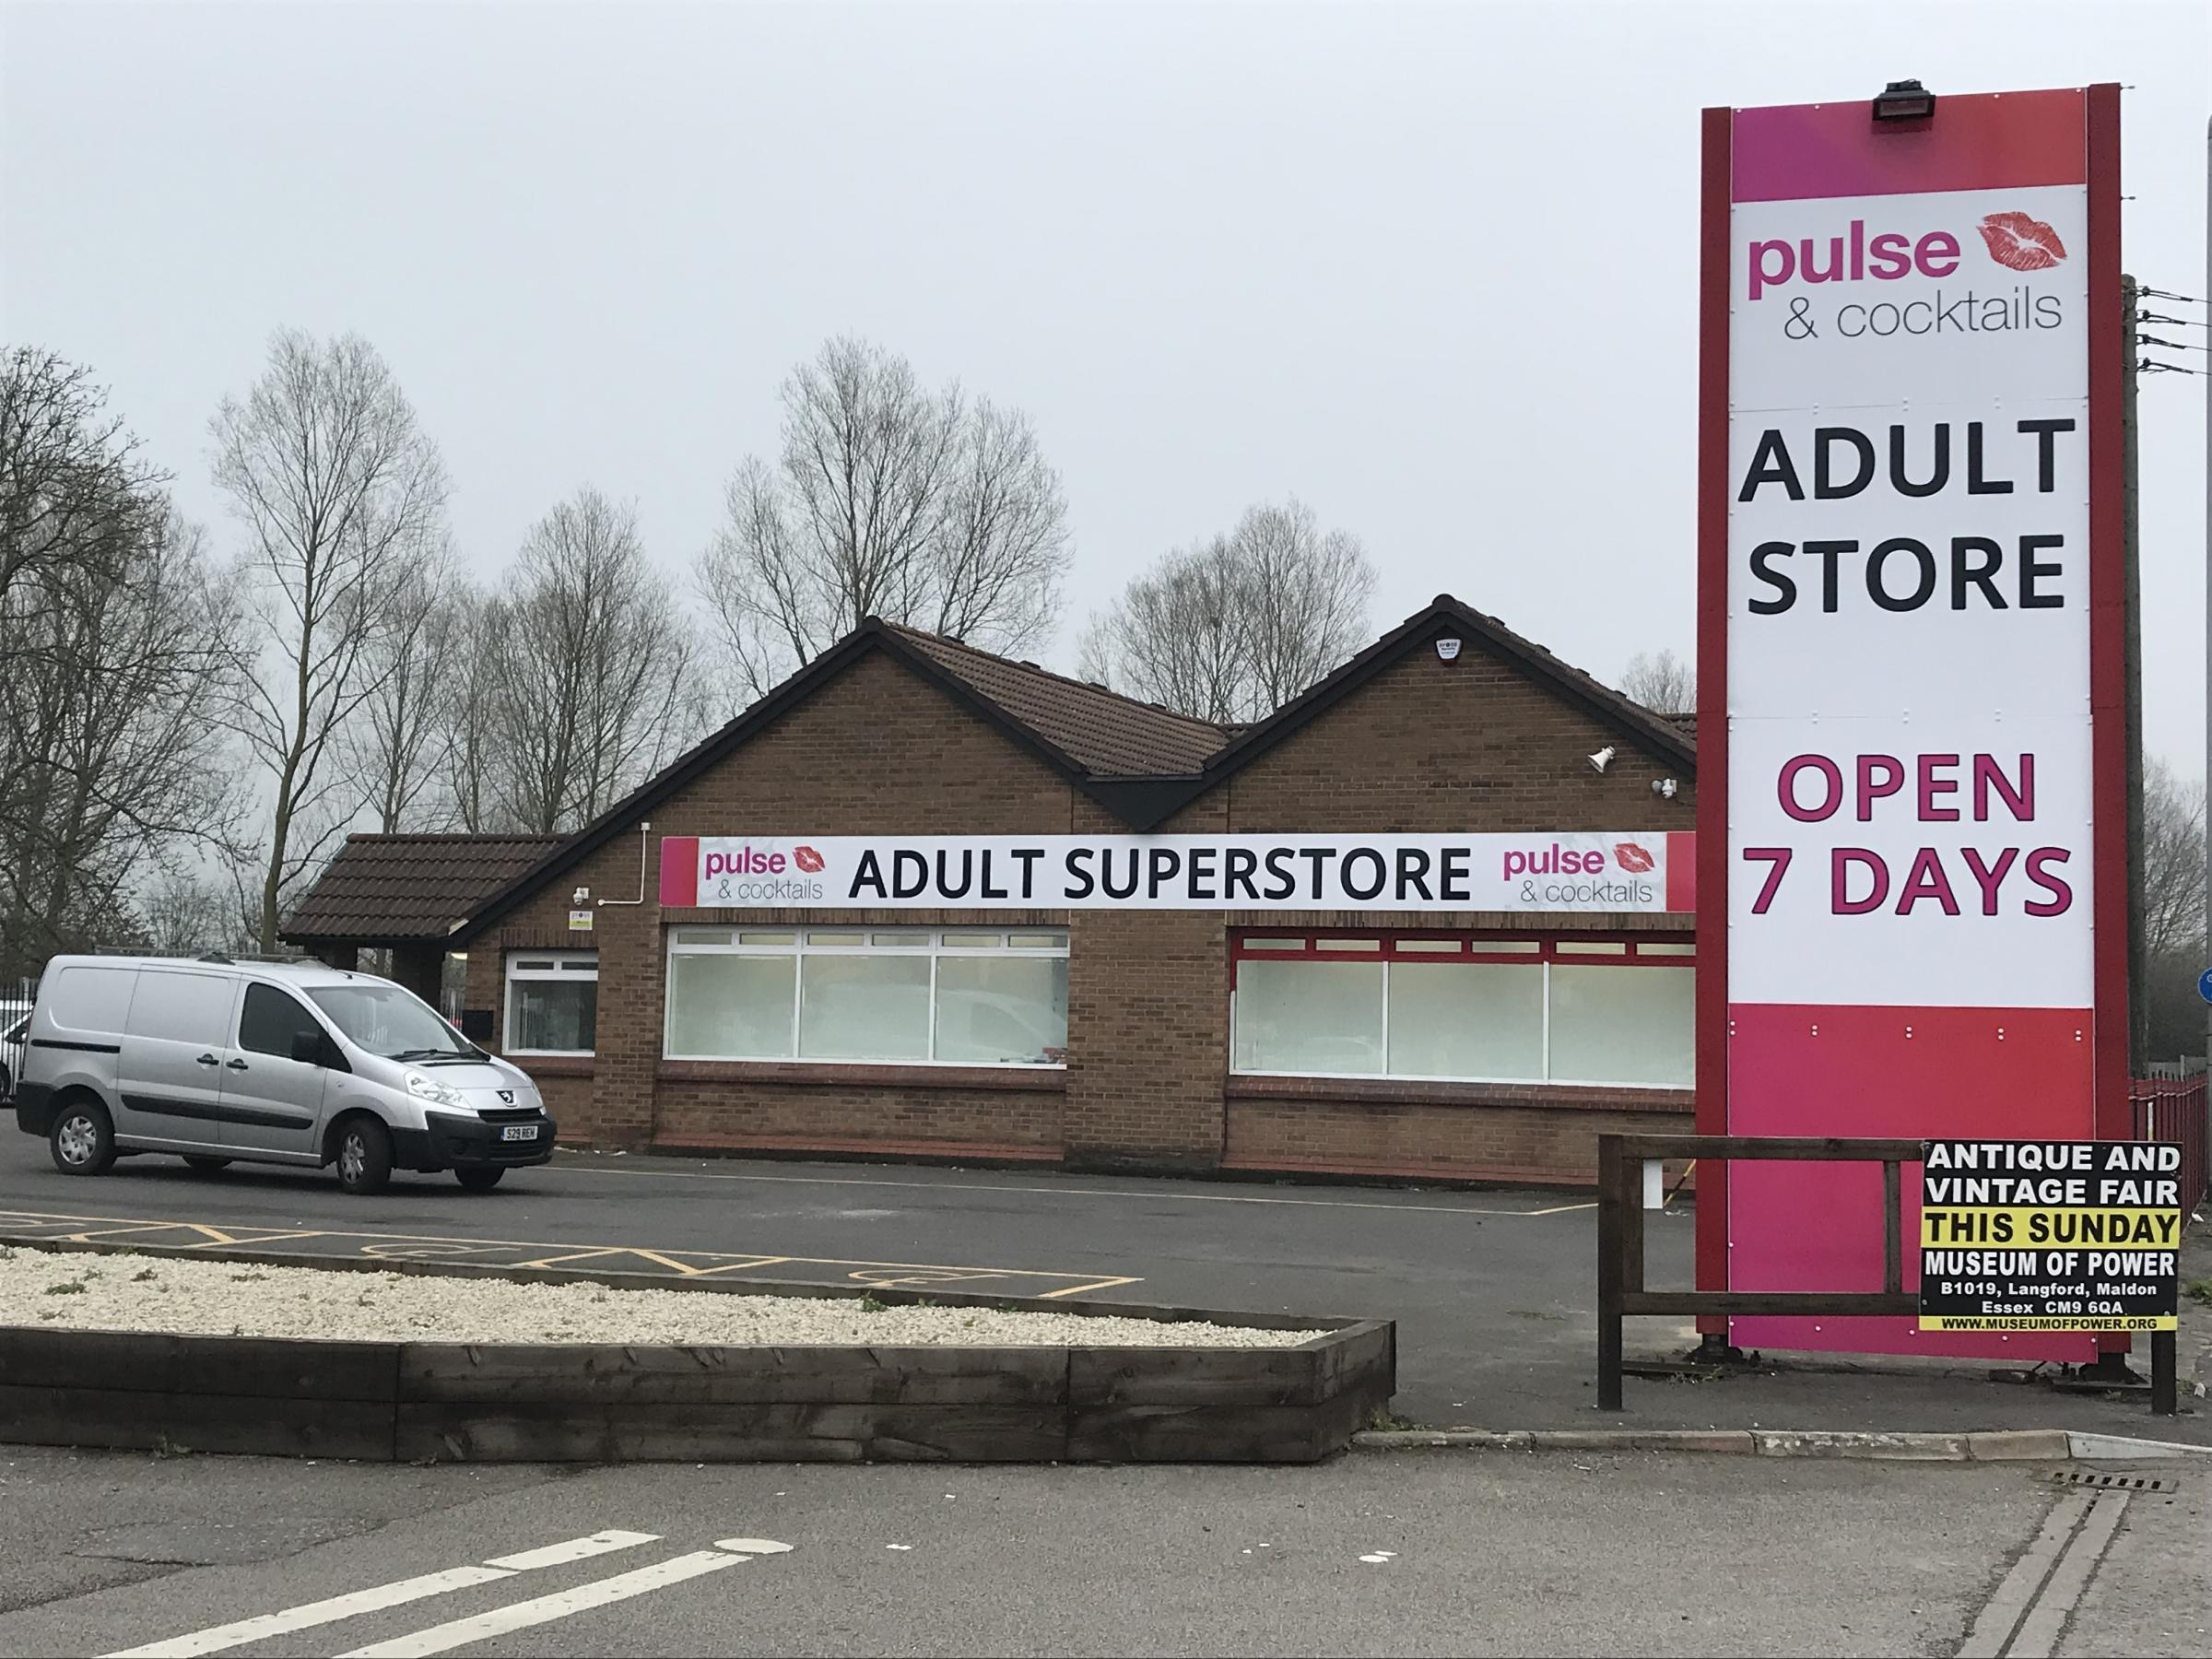 LICENCE: Pulses and Cocktails, just off the A12 near Witham, has applied for a Sex Establishment Licence